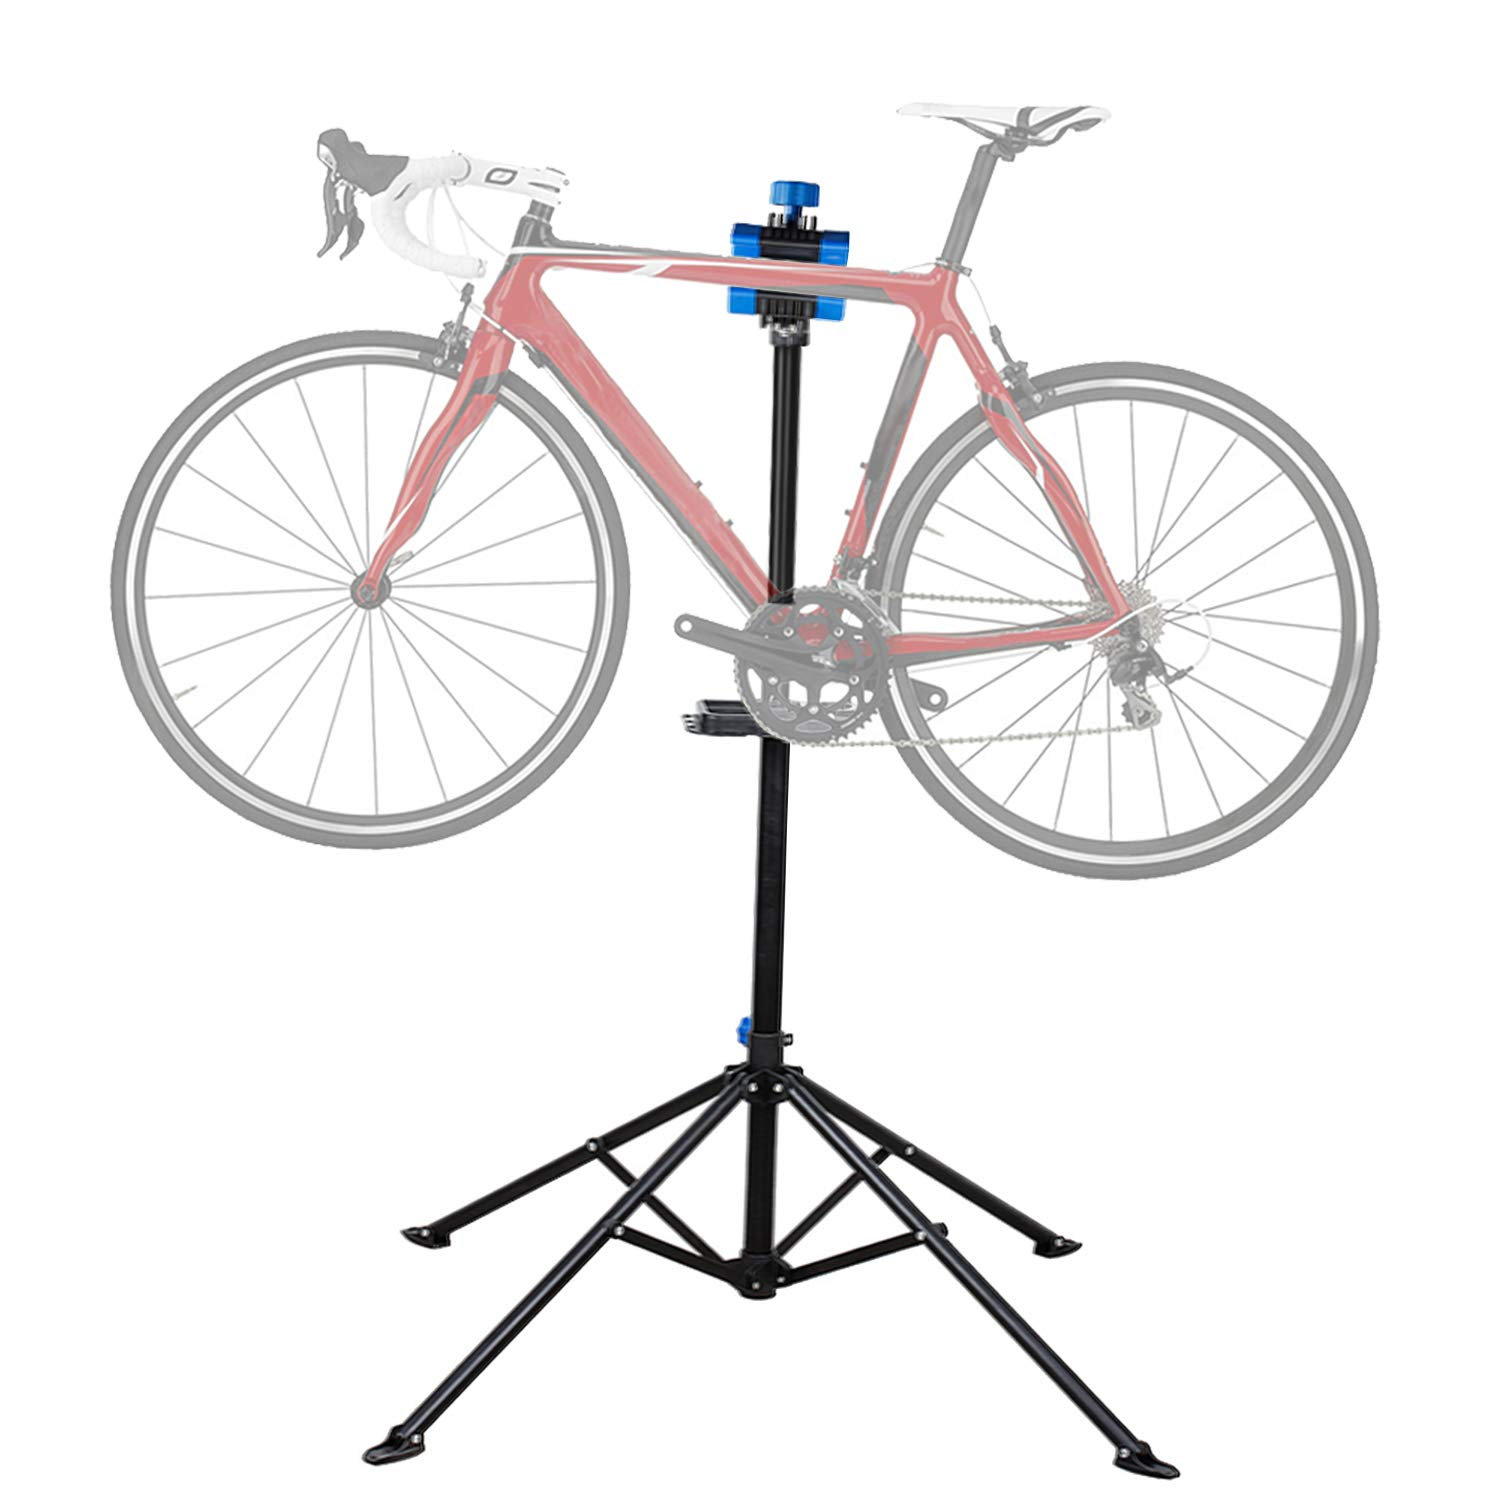 Flexzion Bike Repair Stand Workstation, Bicycle Maintenance Workstand, 41''-75'' Adjustable Foldable Cycle Rack, Lightweight, w/Tool Tray, Telescopic Arm & 4 Feet Base for Home Mechanic Workshop by Flexzion